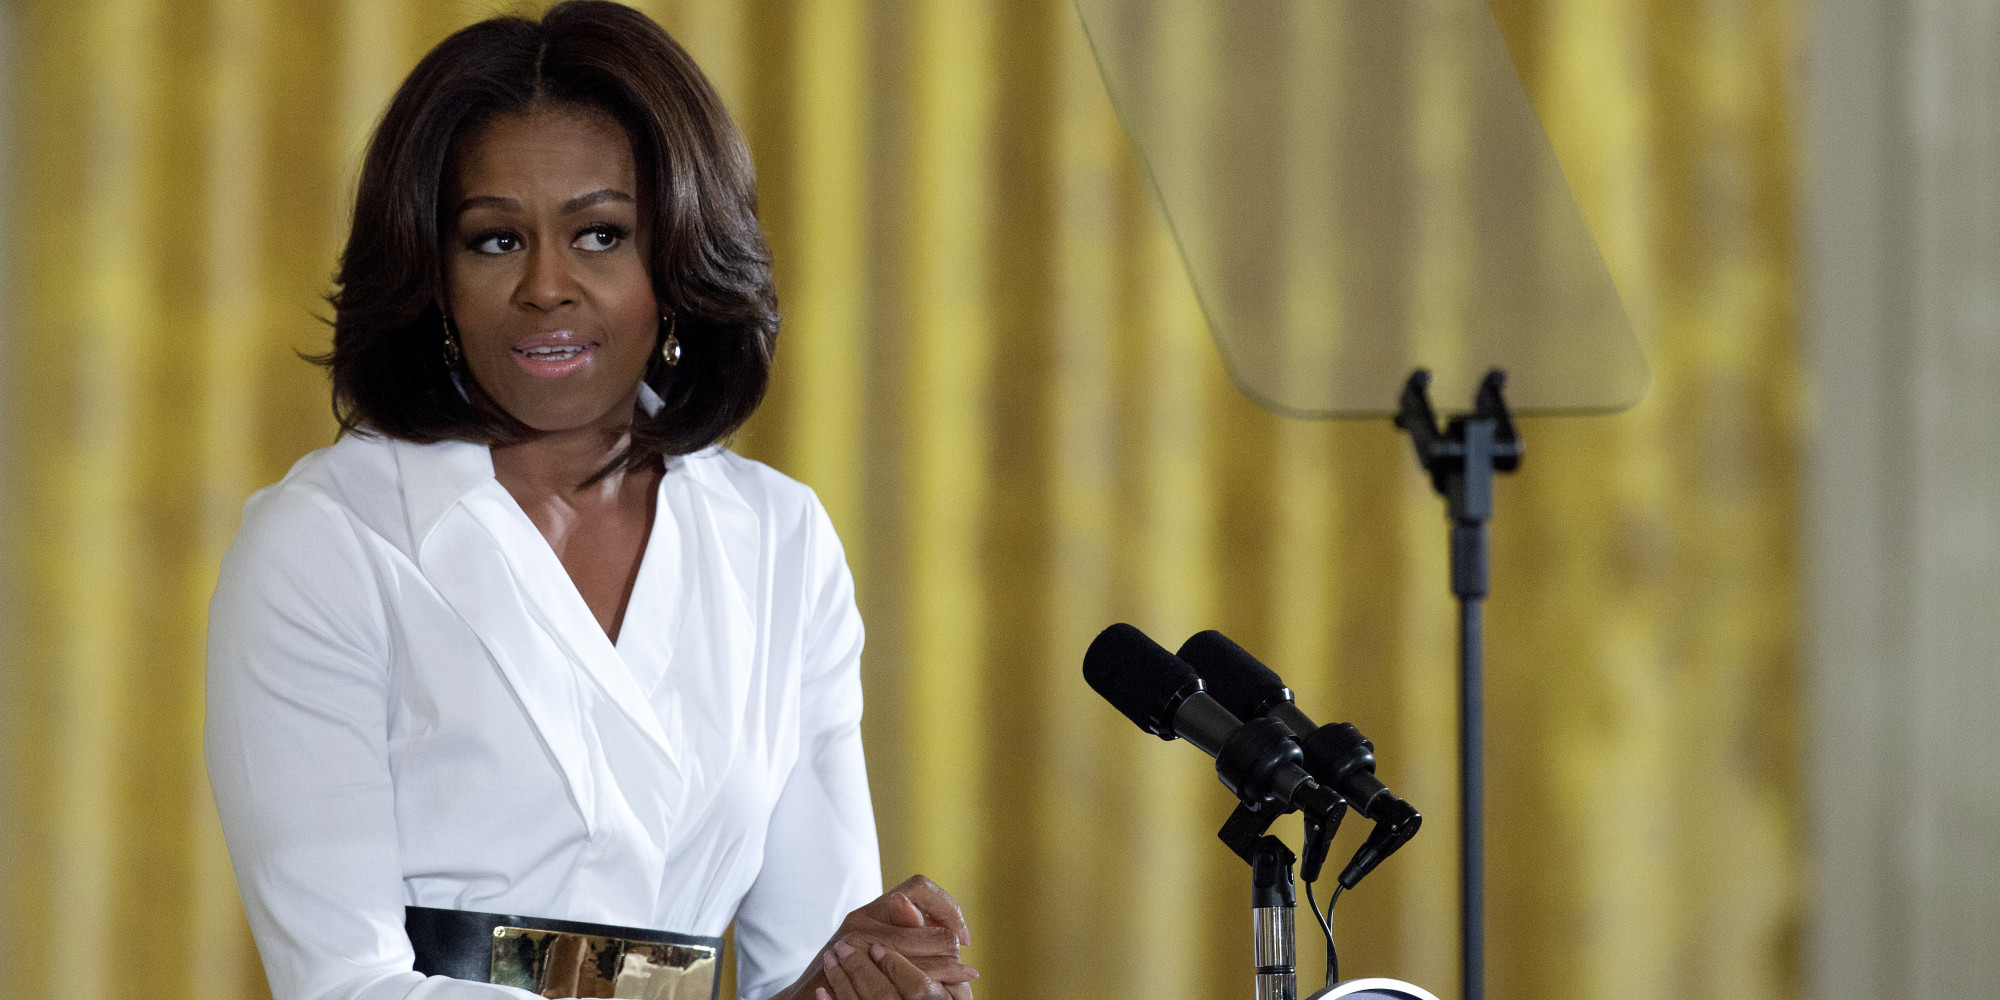 michelle obama thesis christopher hitchens The thesis written by michelle lavaughn robinson (now obama) in 1985, contains three unmitigated impediments that would have rendered the paper an automatic f in the introduction to the research paper course i taught at a chicago area community college, yet it was accepted at her ivy league princeton university alma mater.